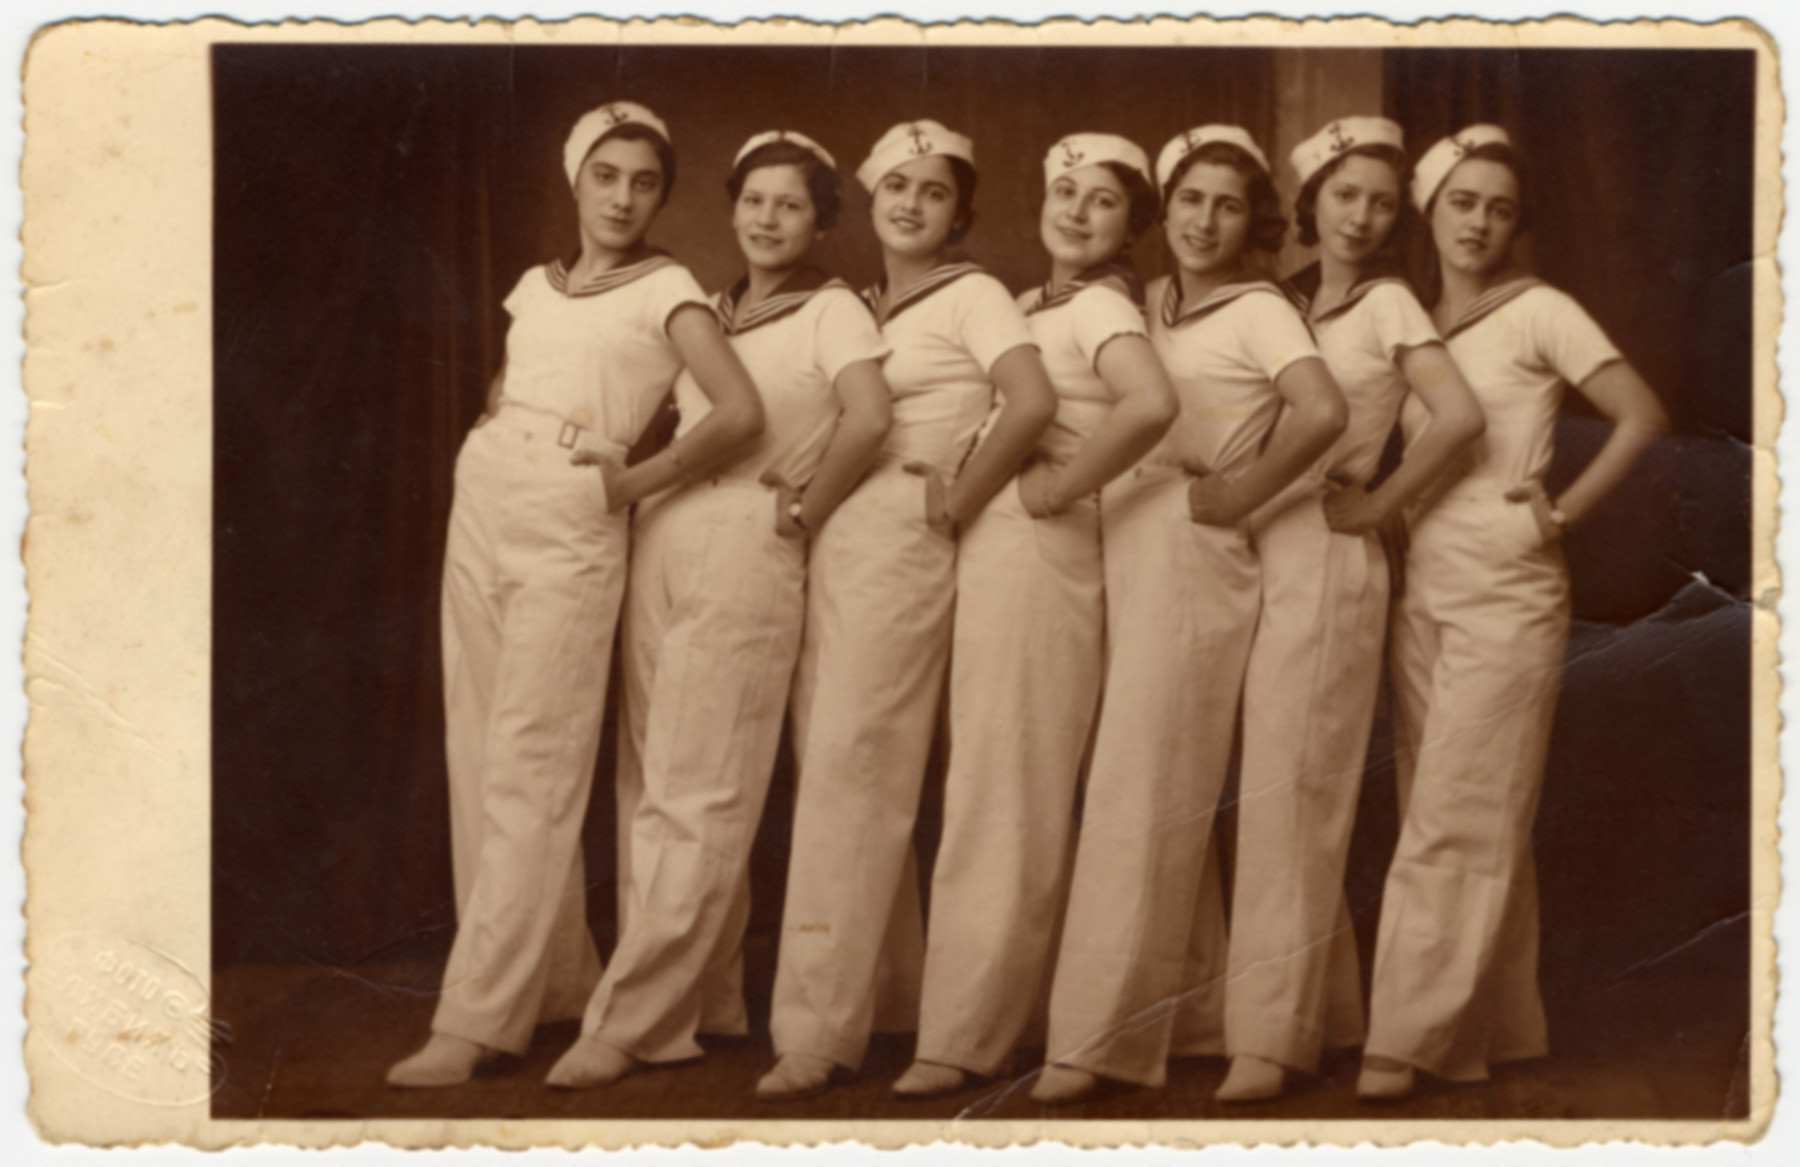 A Maccabi gymnastic team poses standing in a row in sailor costumes.  Victoria Ashkenazi is pictured third from the left.